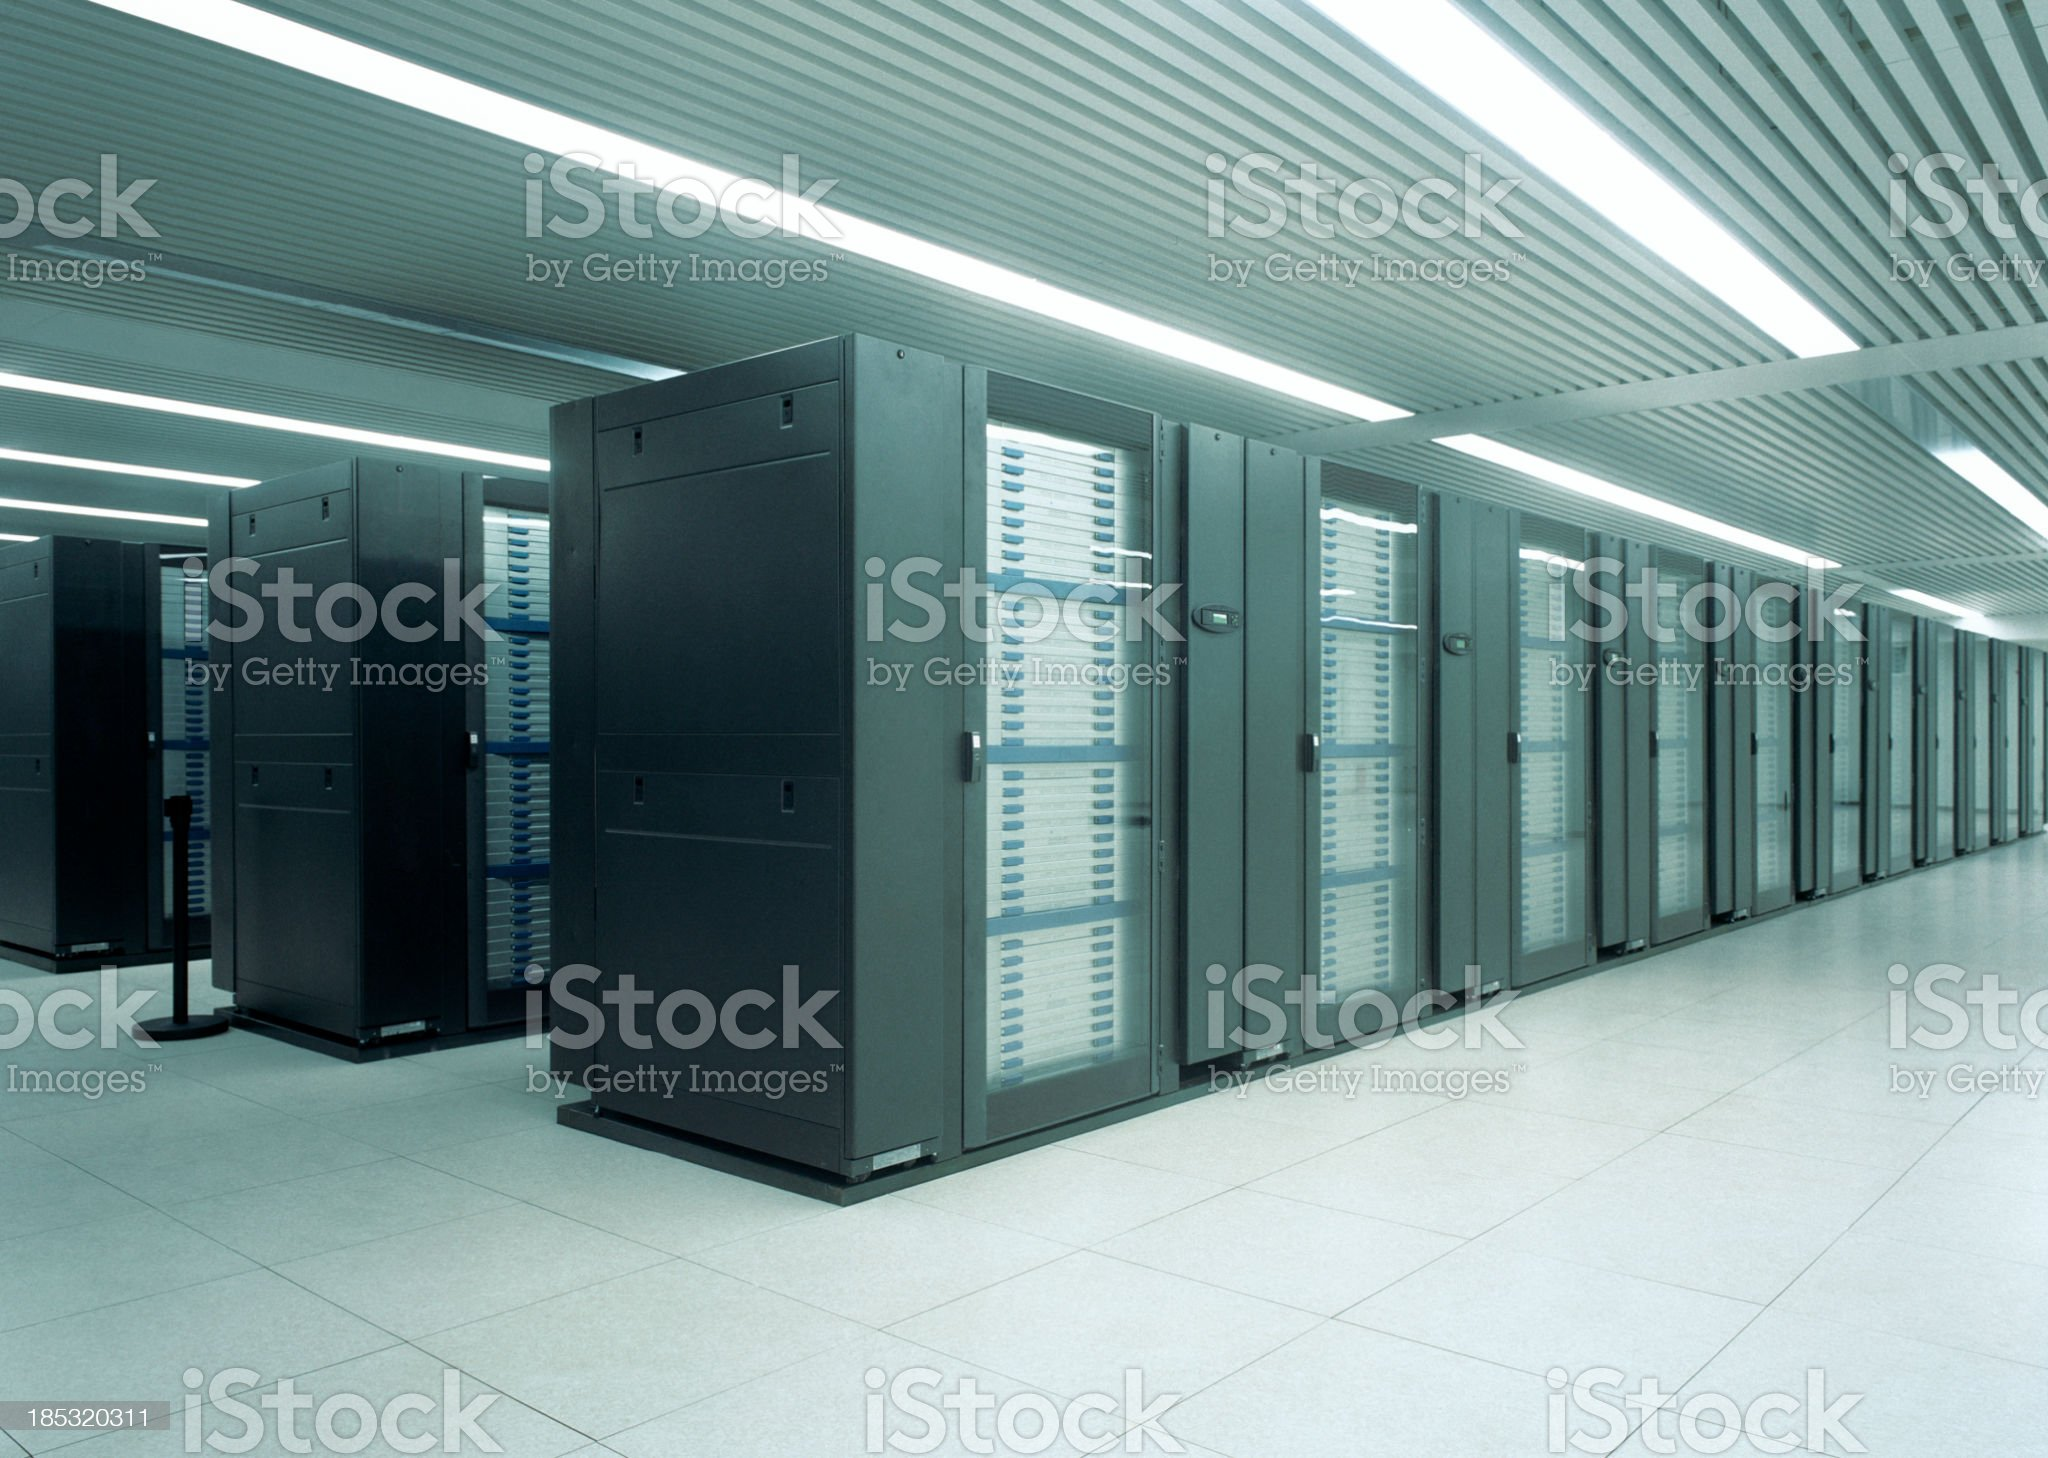 Mainframe computers in data center royalty-free stock photo